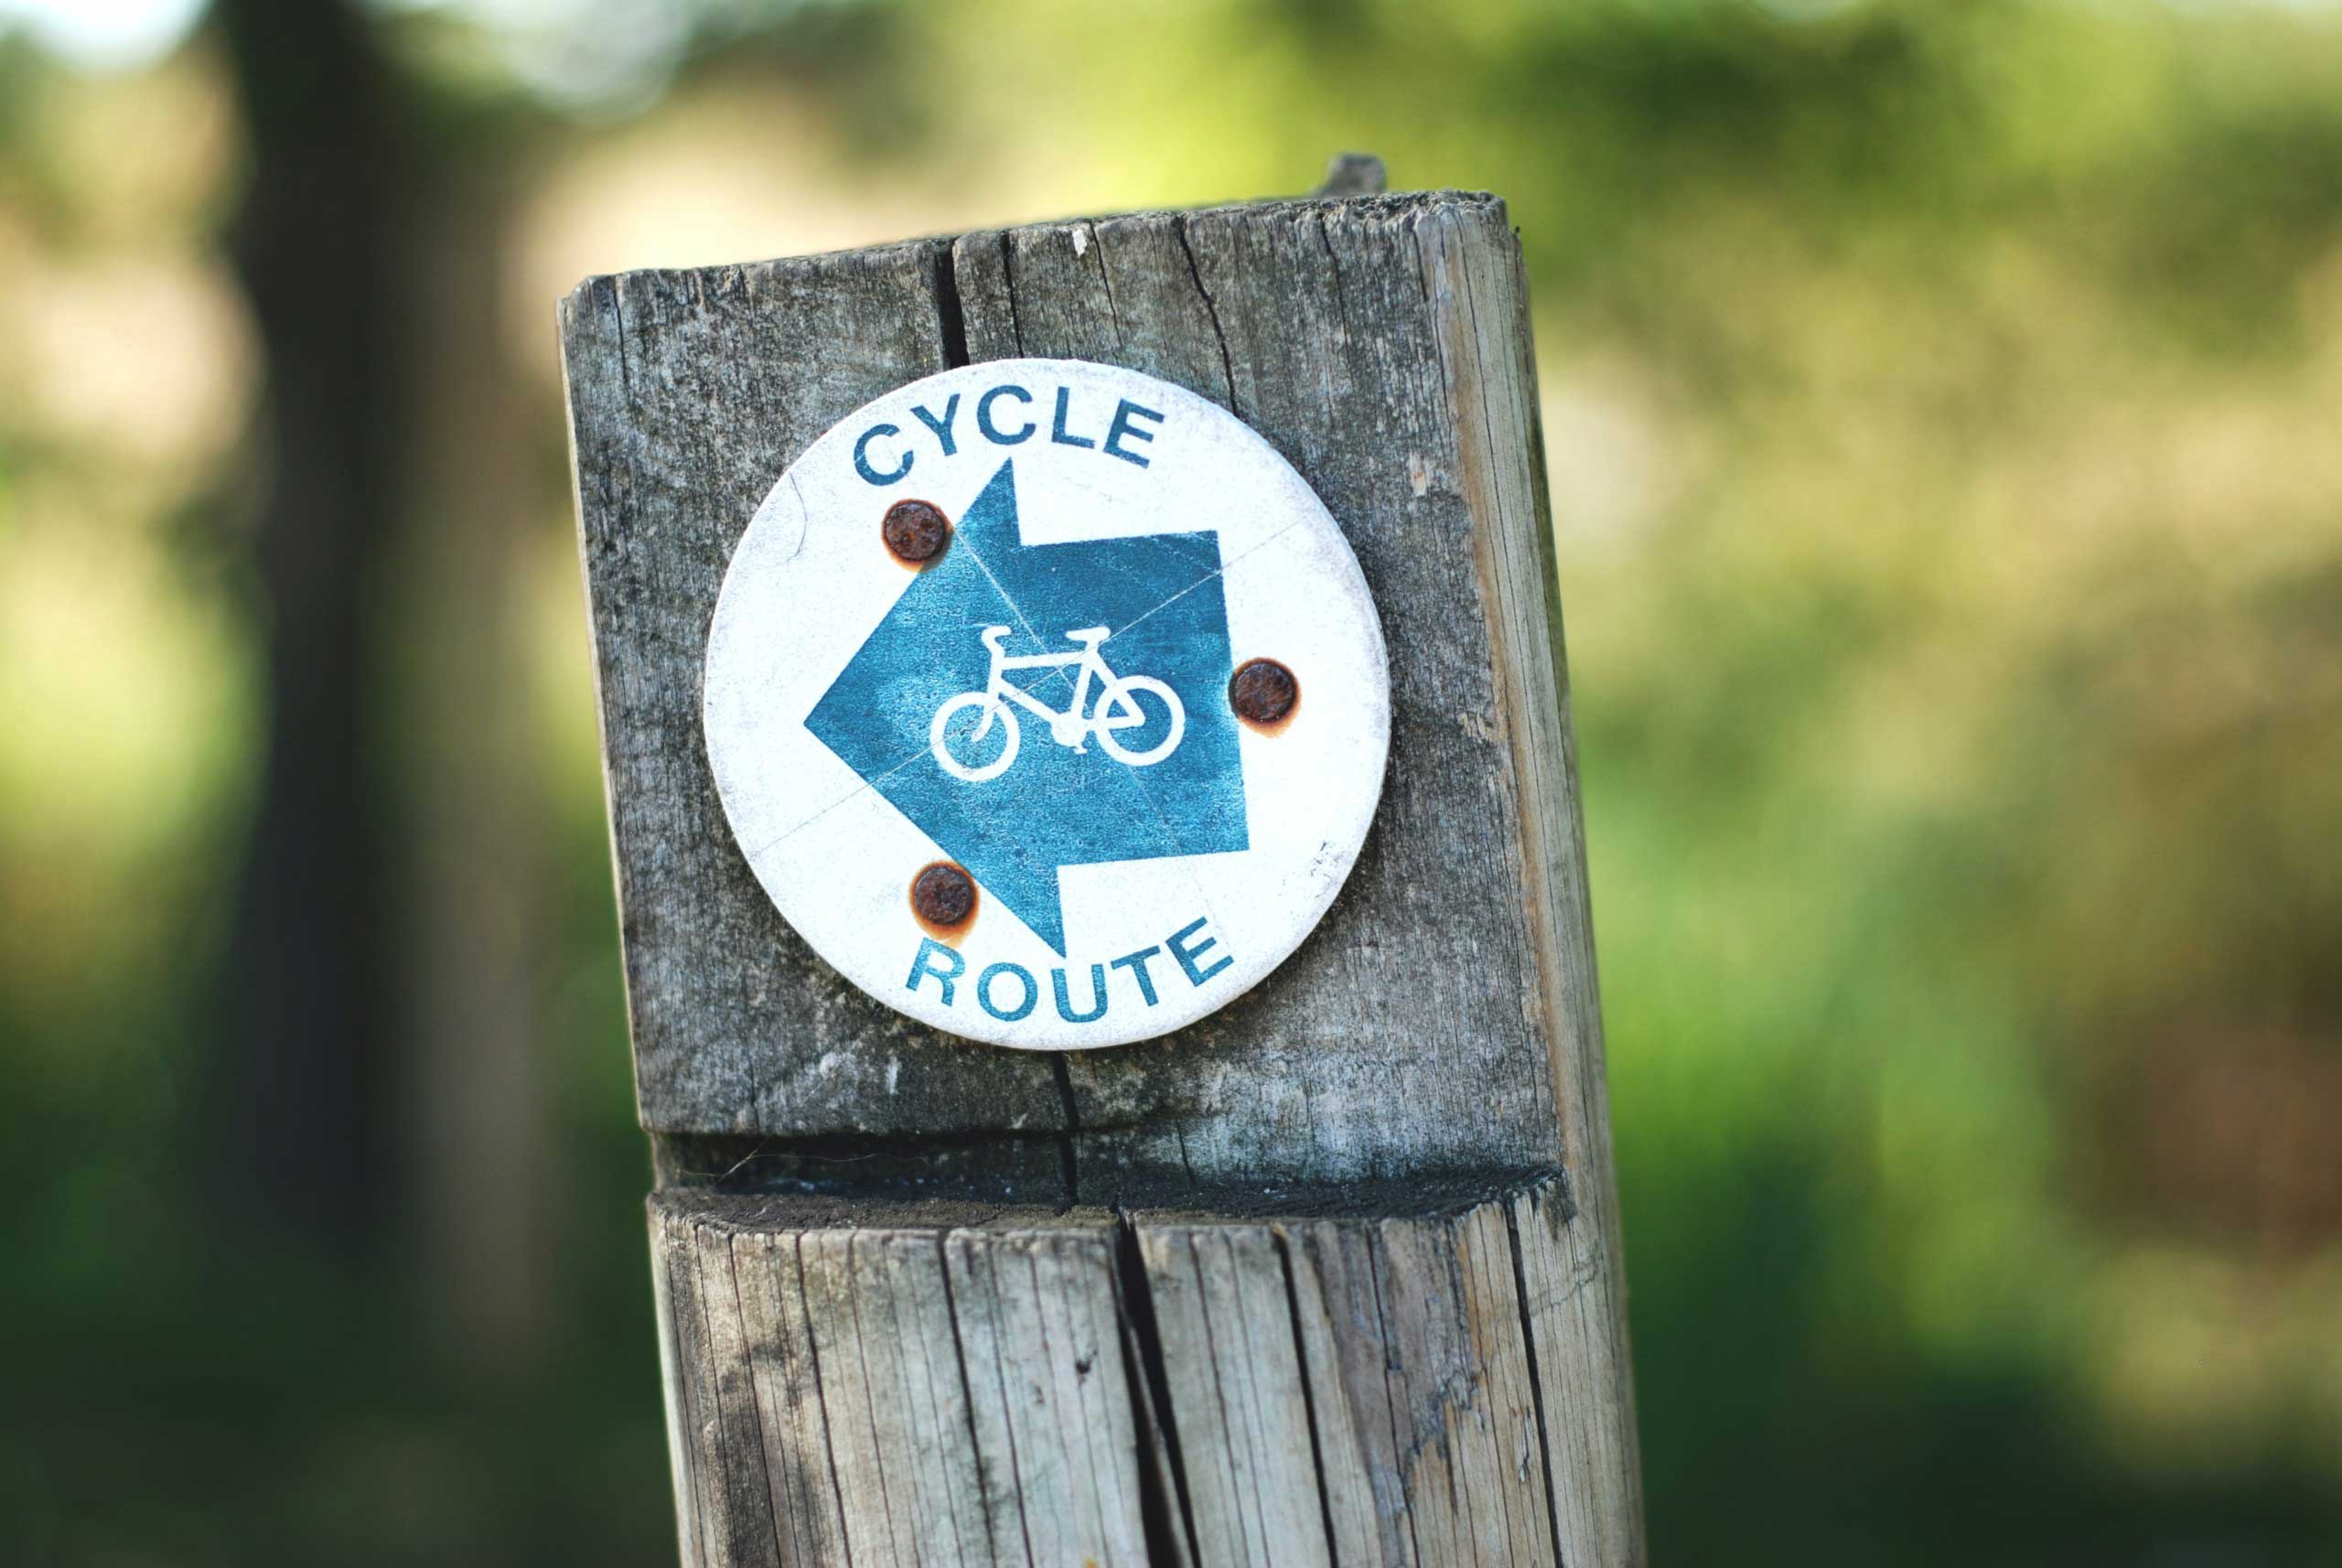 picture of cycle route sign